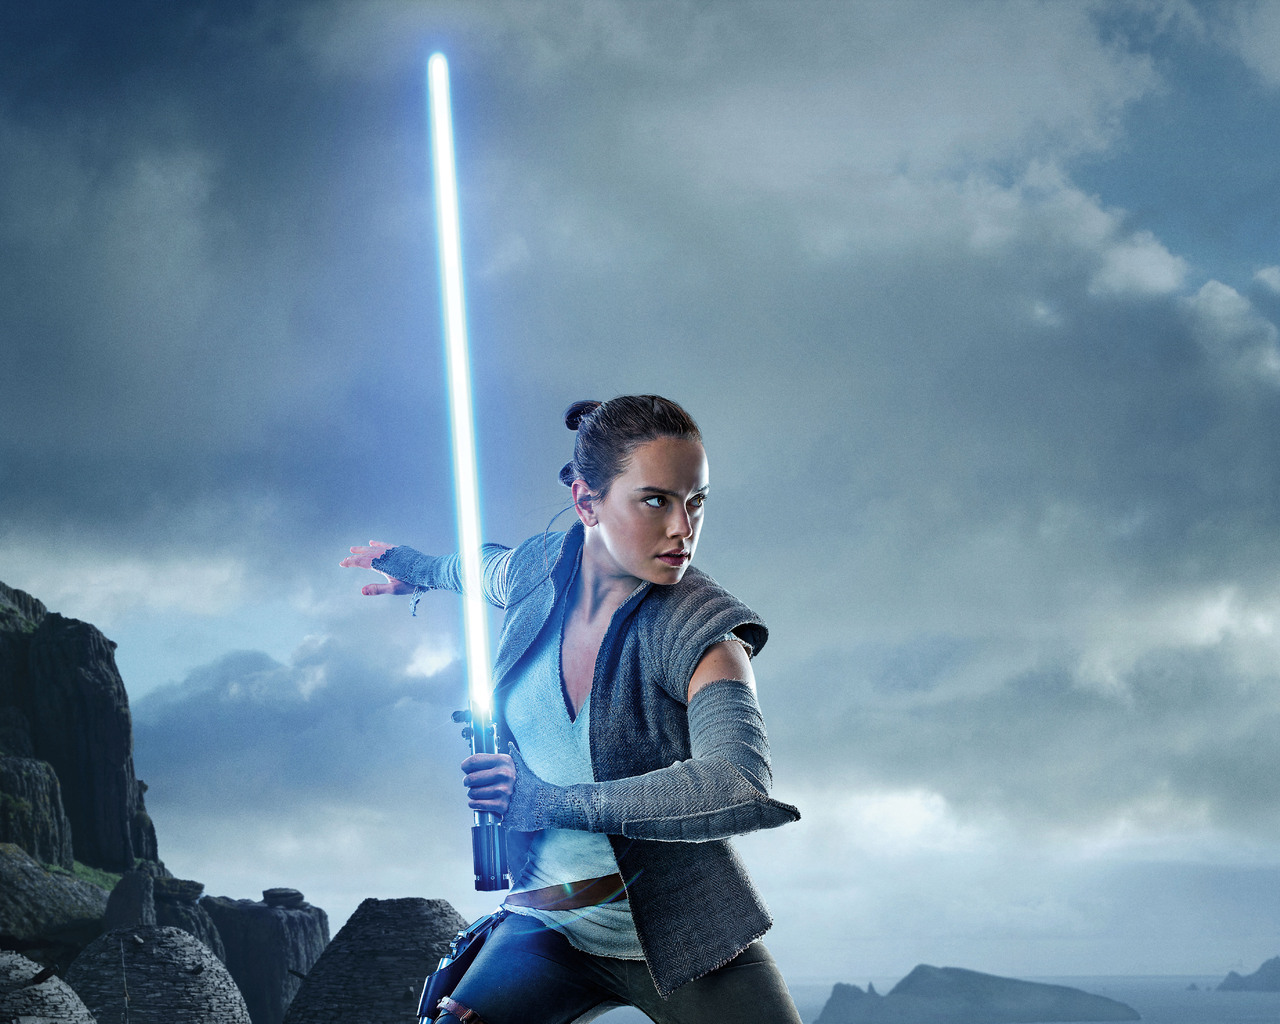 rey-in-star-wars-the-last-jedi-5j.jpg